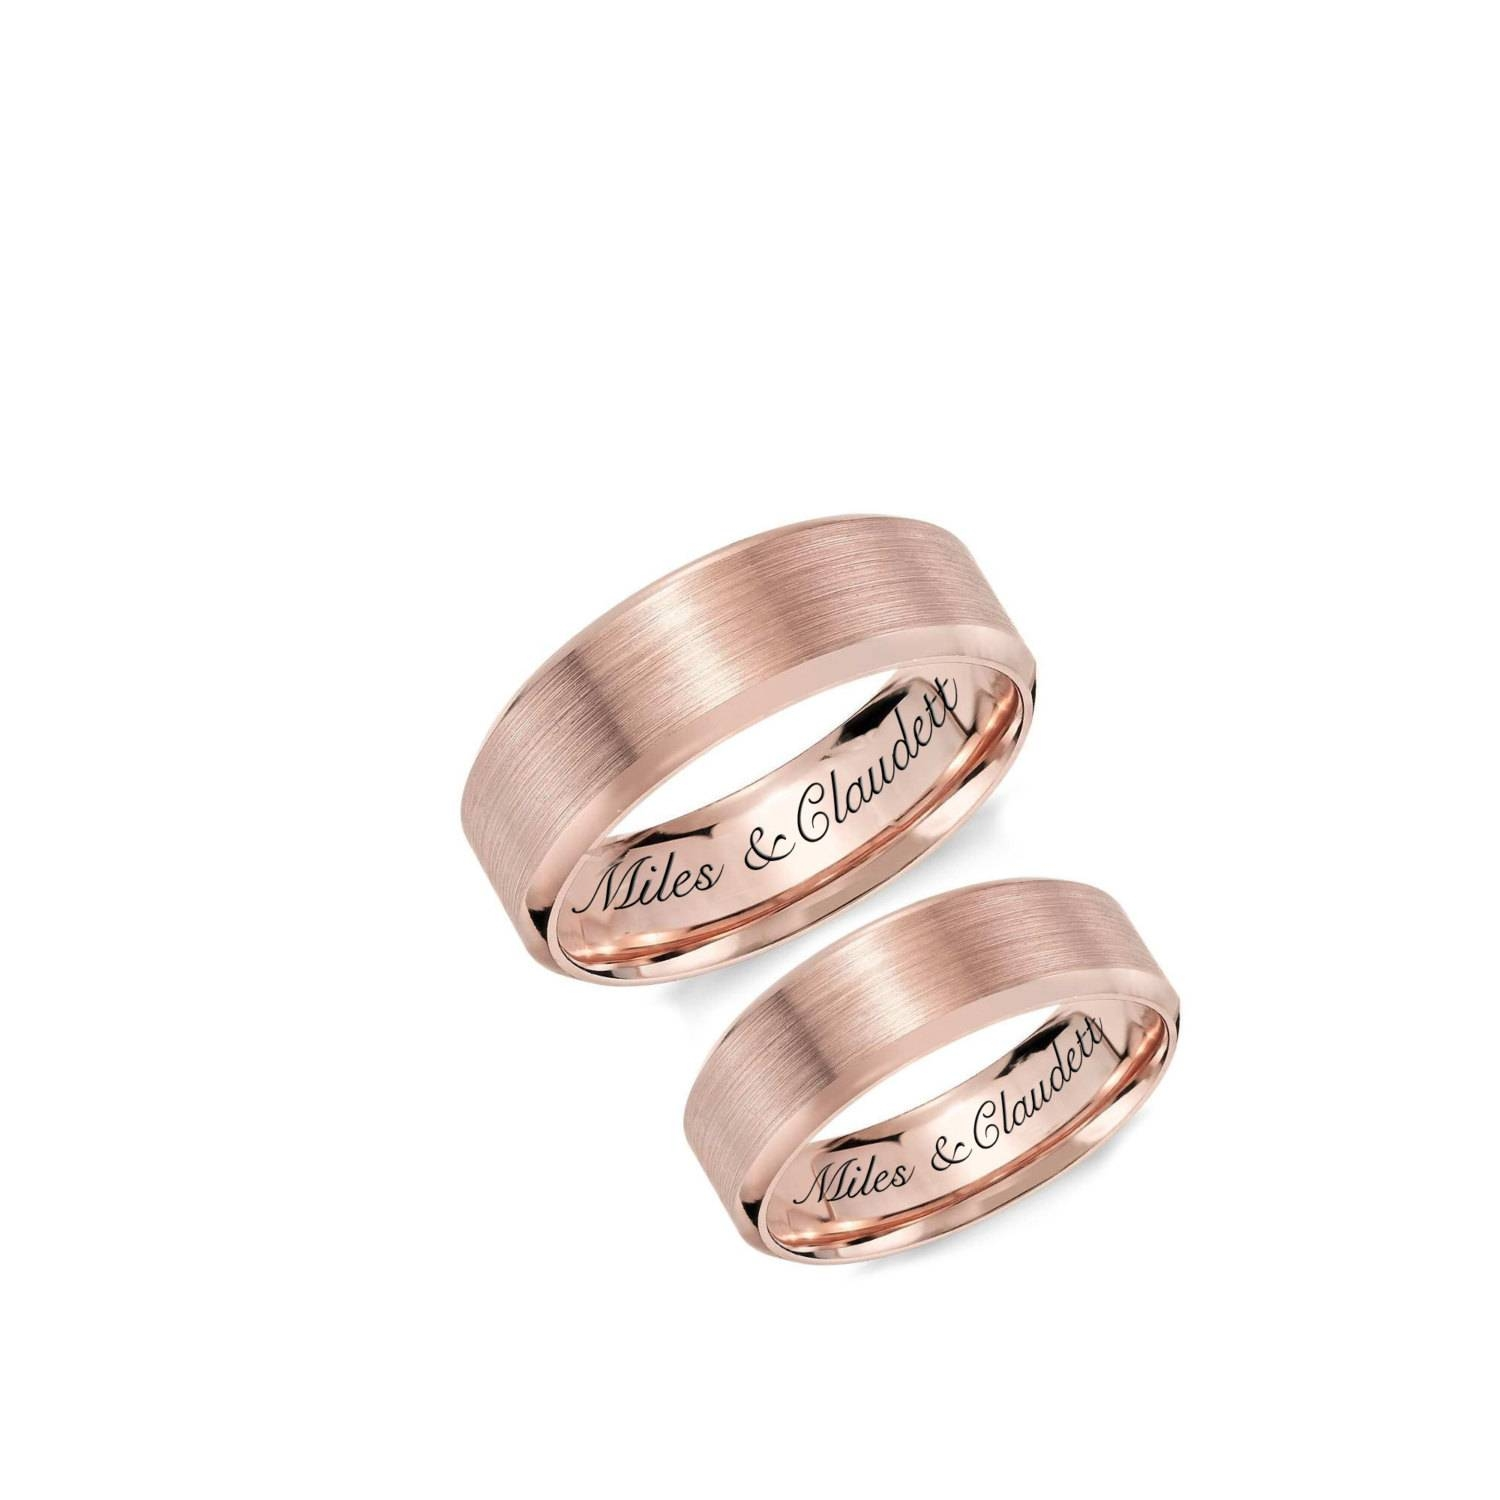 Personalized Rings Engraved Rings Rose Gold Ring Set Regarding 2018 Anniversary Rings For Couples (View 8 of 25)